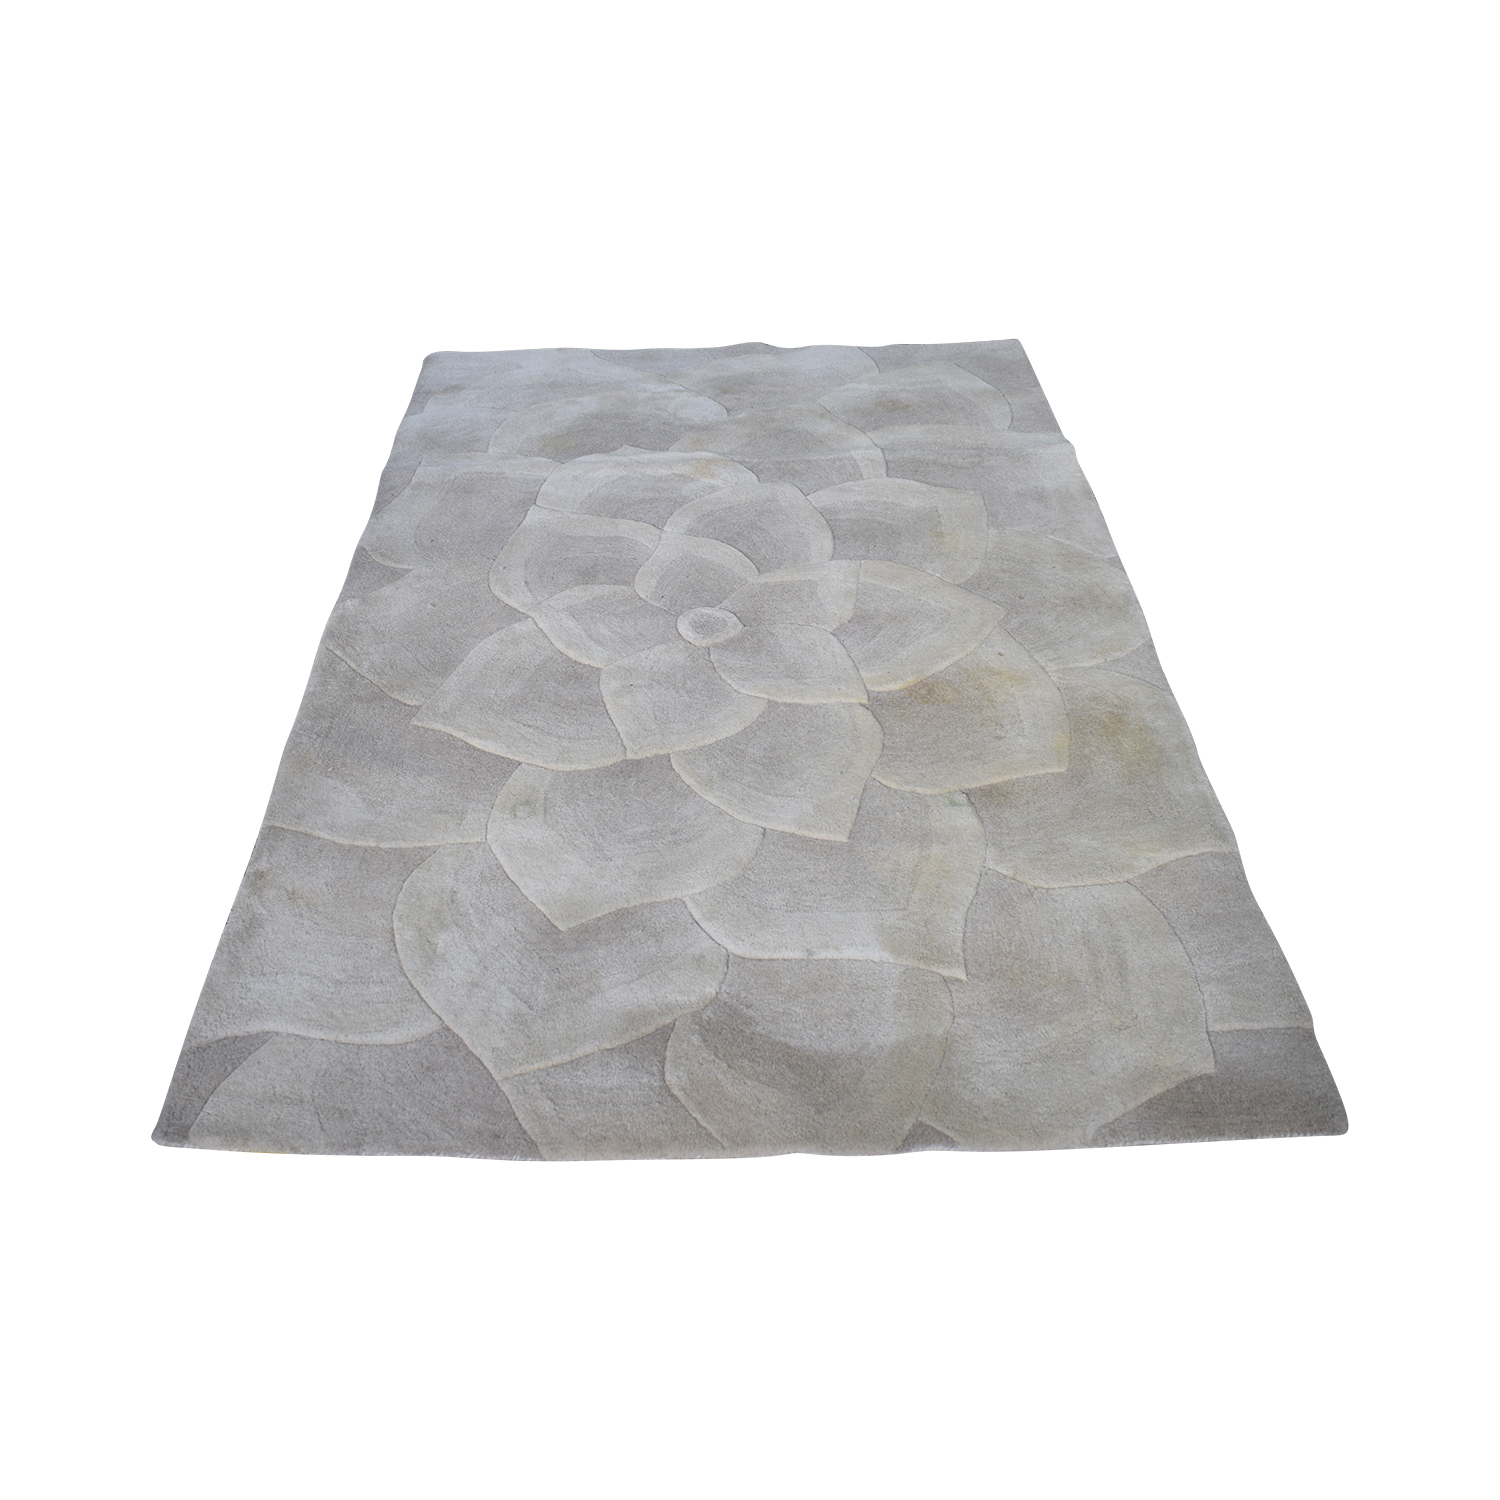 Pier 1 Pier 1 Rose Tufted Area Rug price